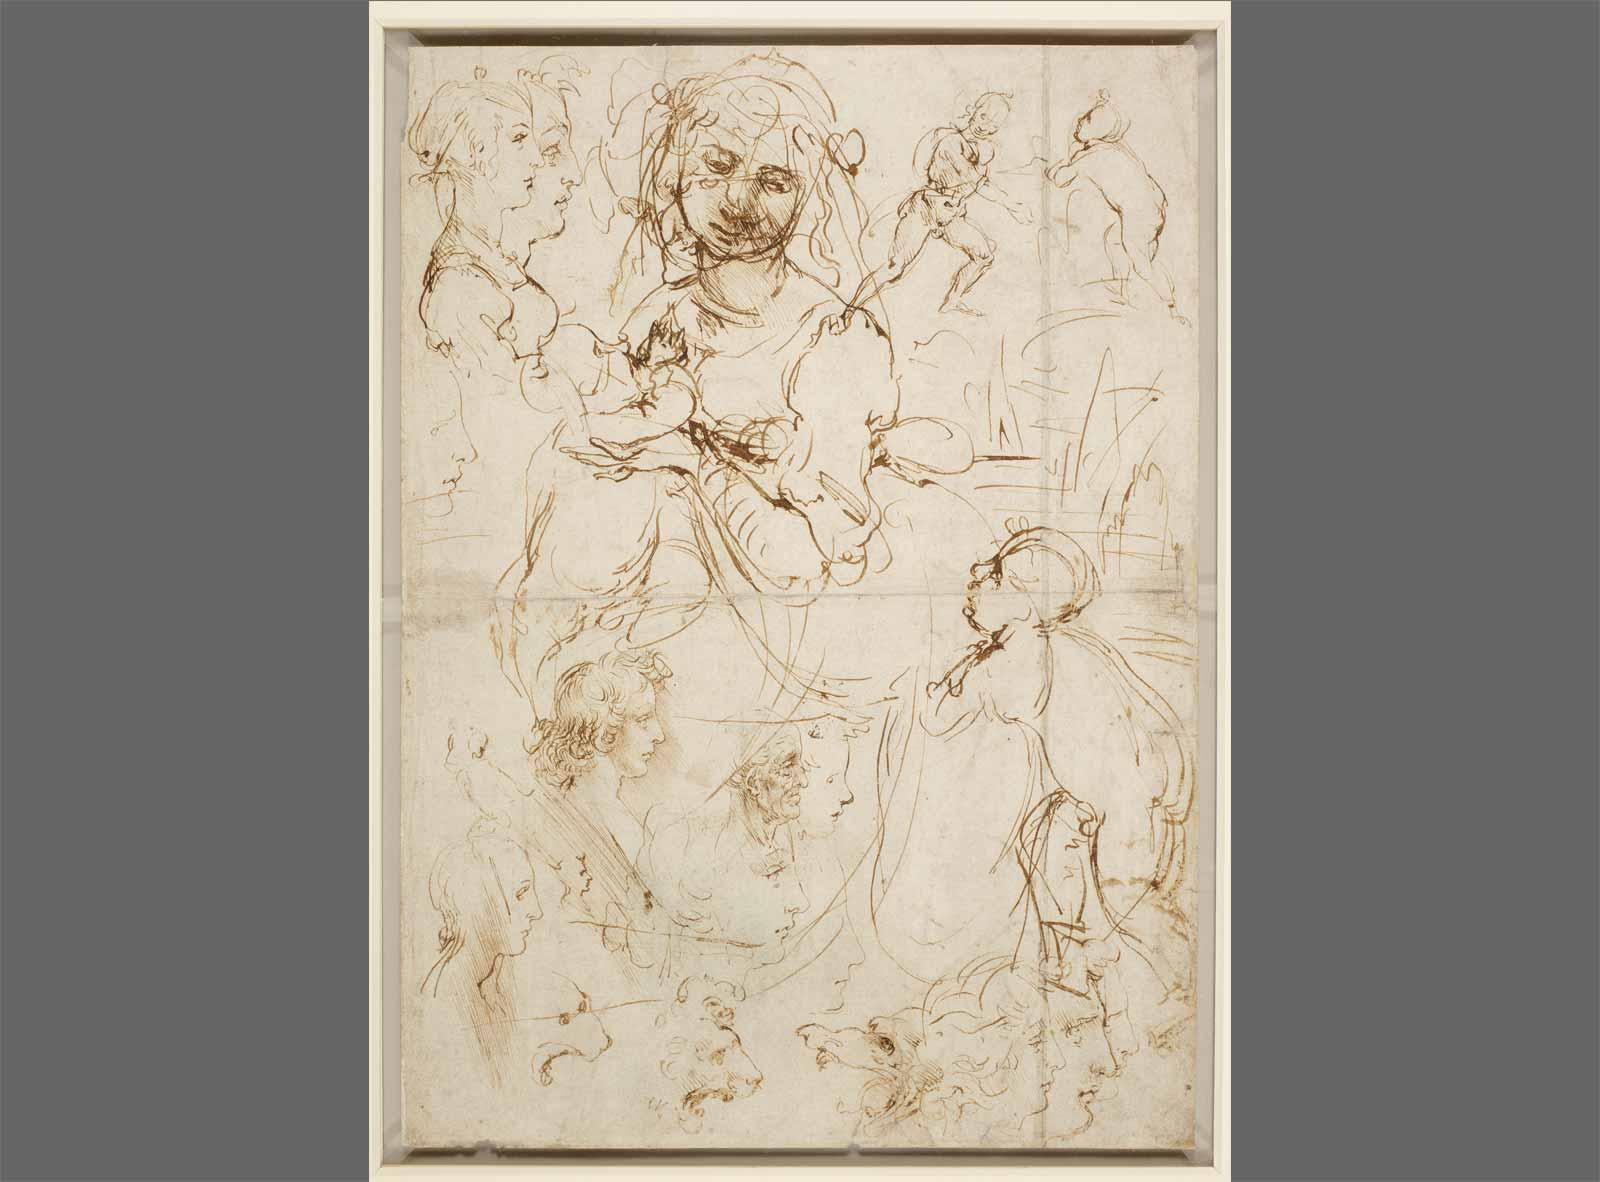 Leonardo da Vinci Sketches of Heads and Figures